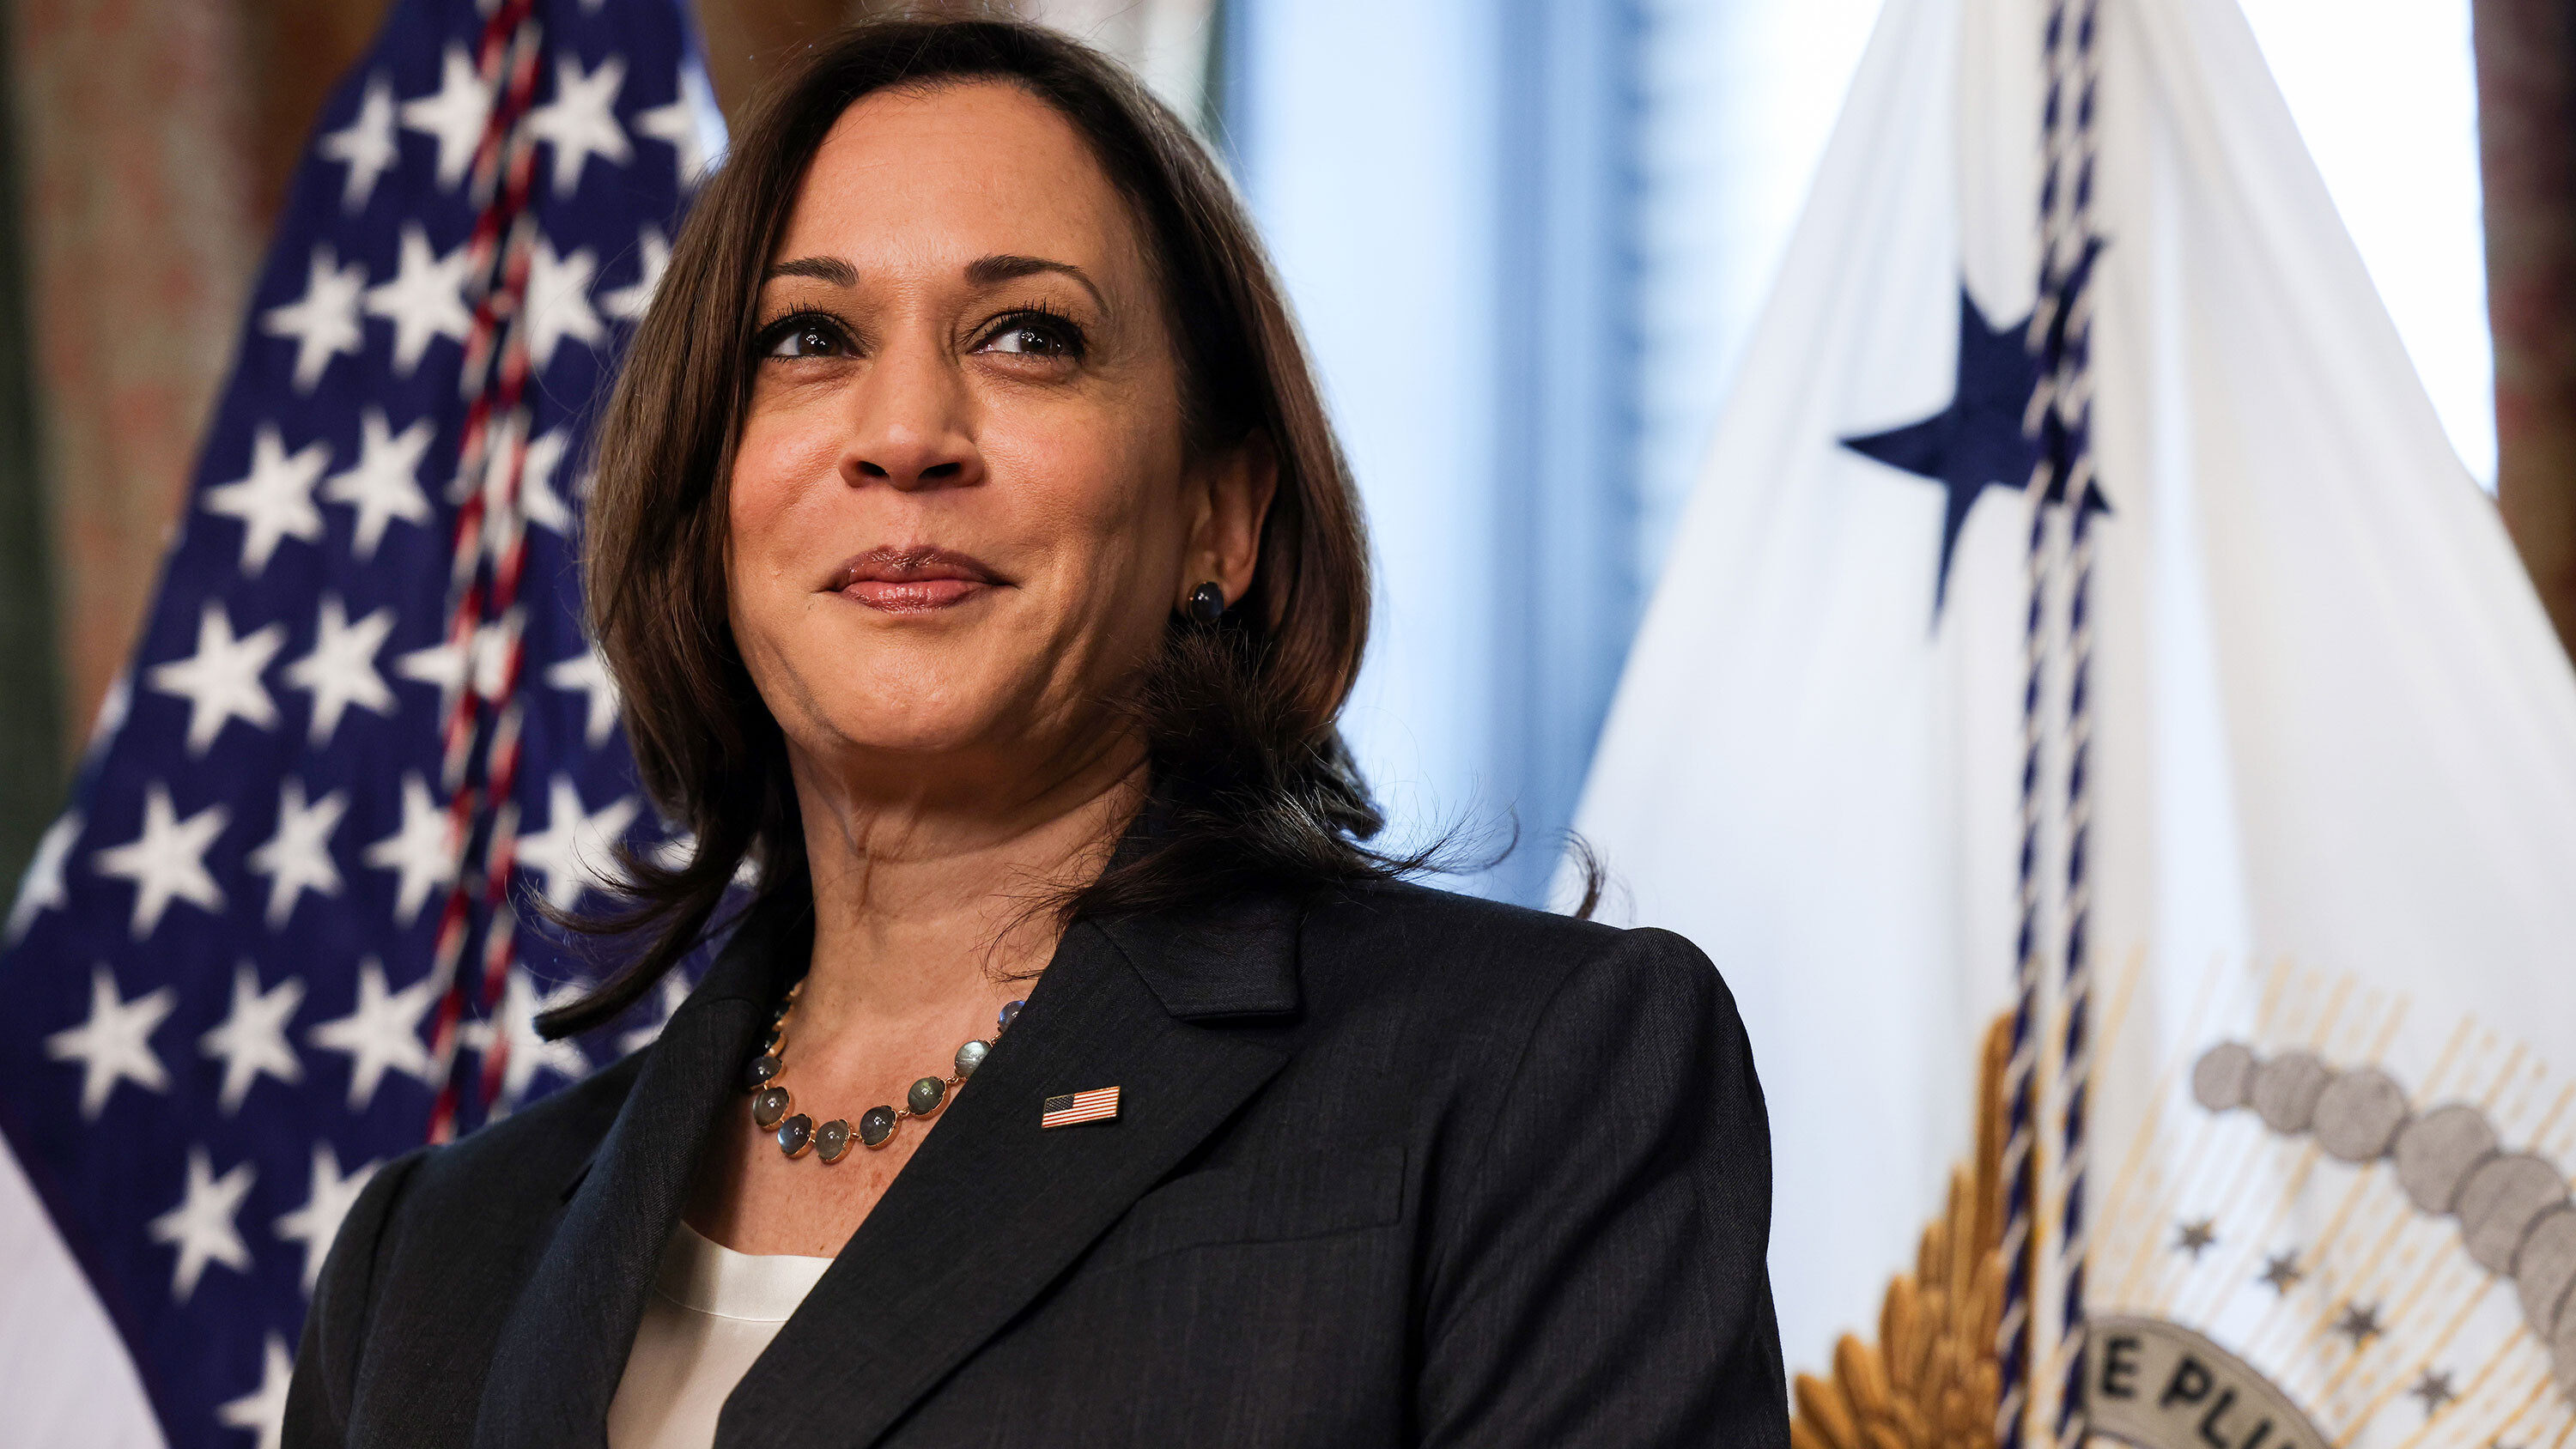 Kamala Harris to campaign with Gavin Newsom in final stretch before California recall election